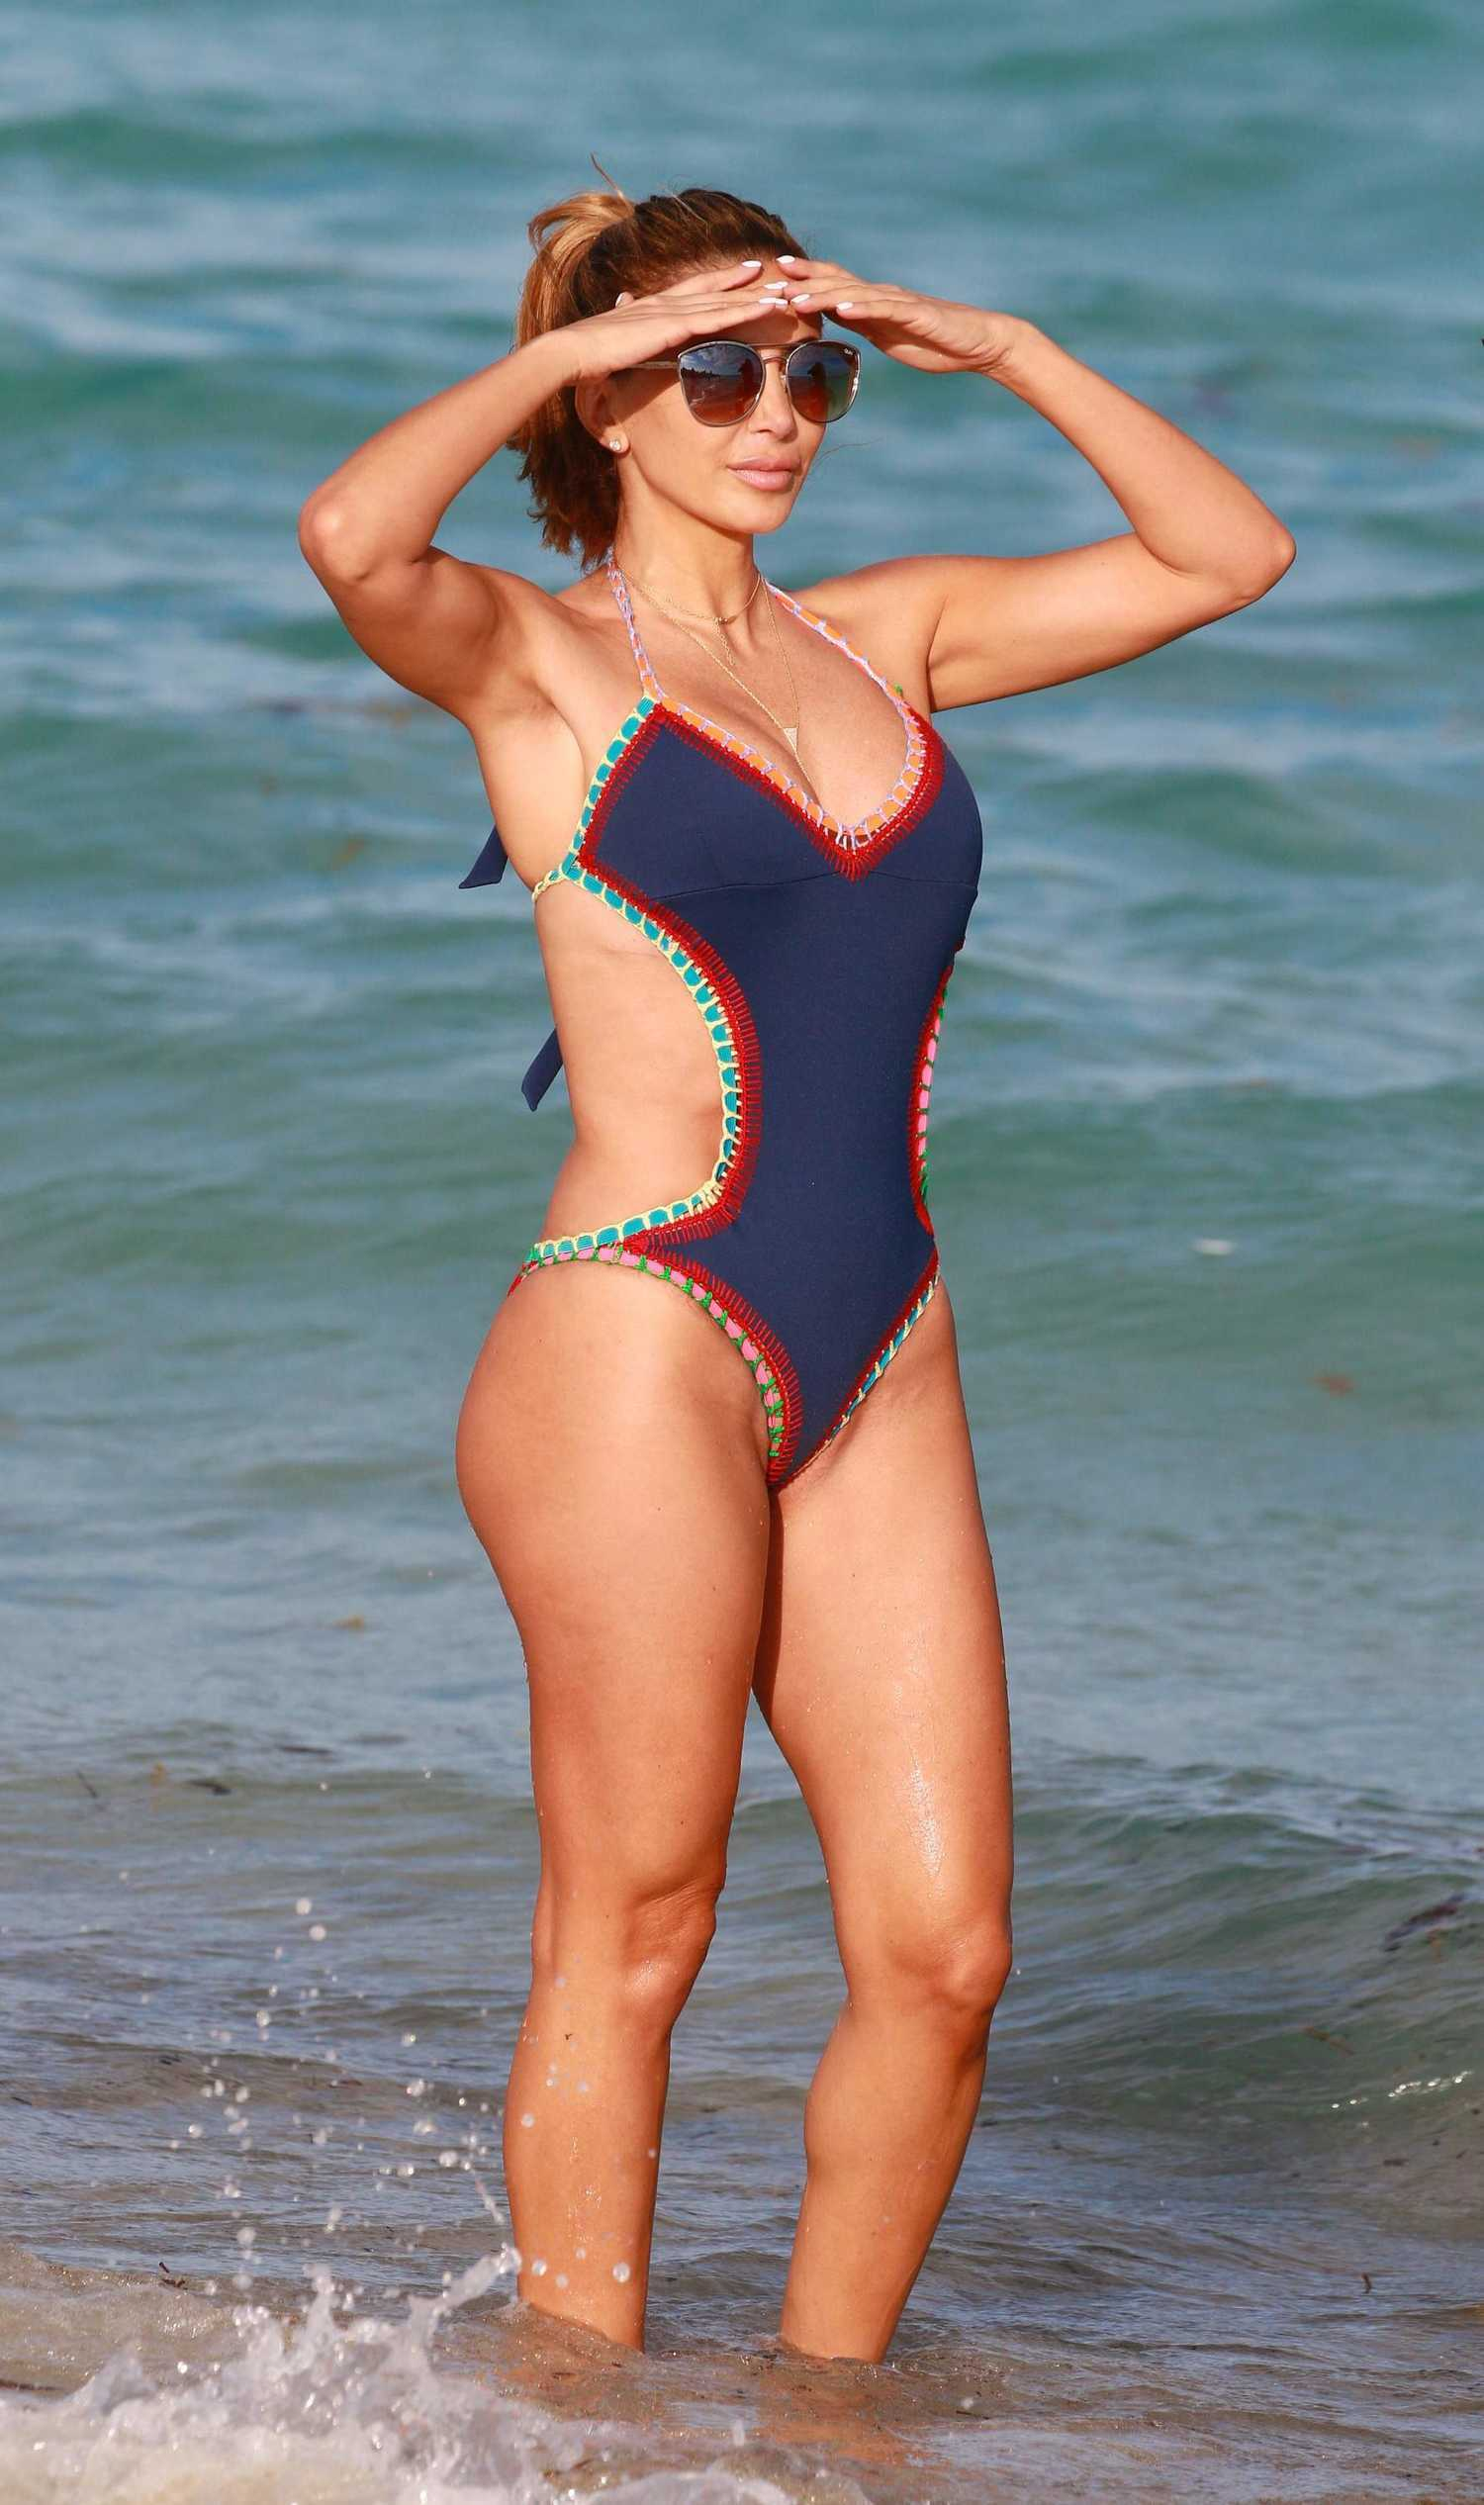 Larsa Pippen Wearing a Swimsuit at the Beach in Miami ...